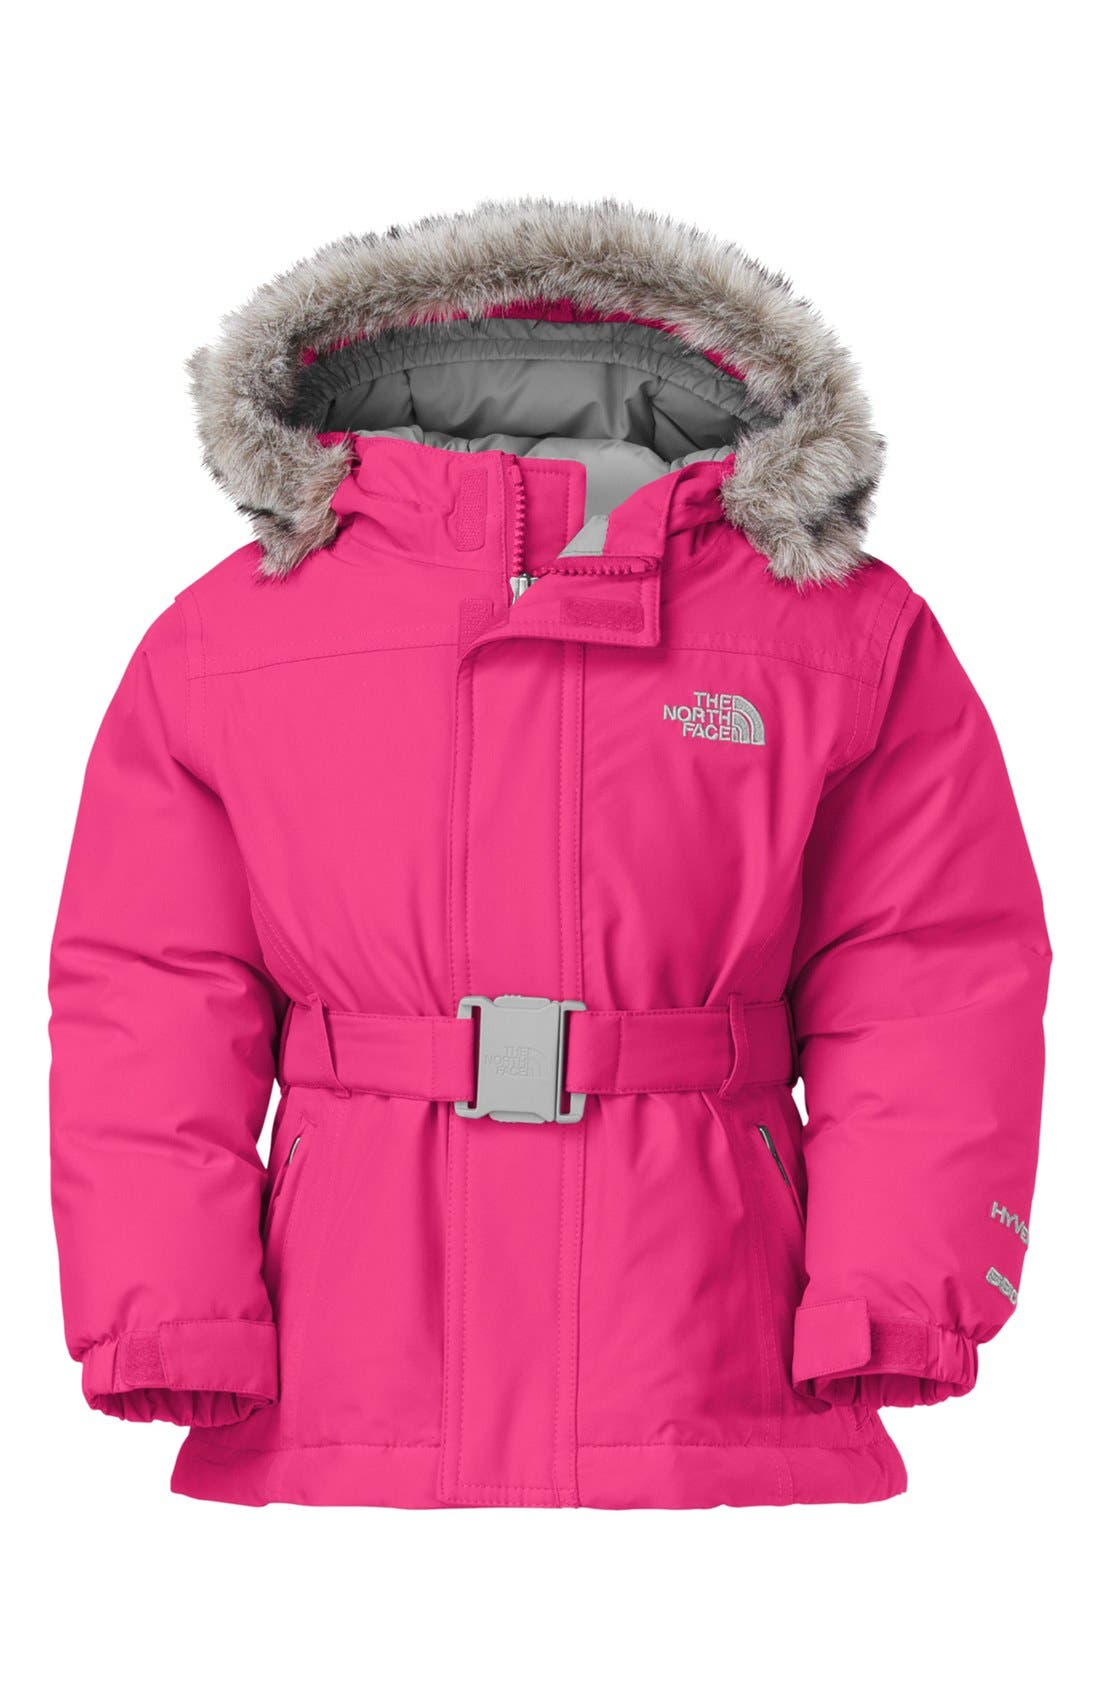 Alternate Image 1 Selected - The North Face 'Greenland' Waterproof 550-Fill Down Jacket (Toddler Girls)